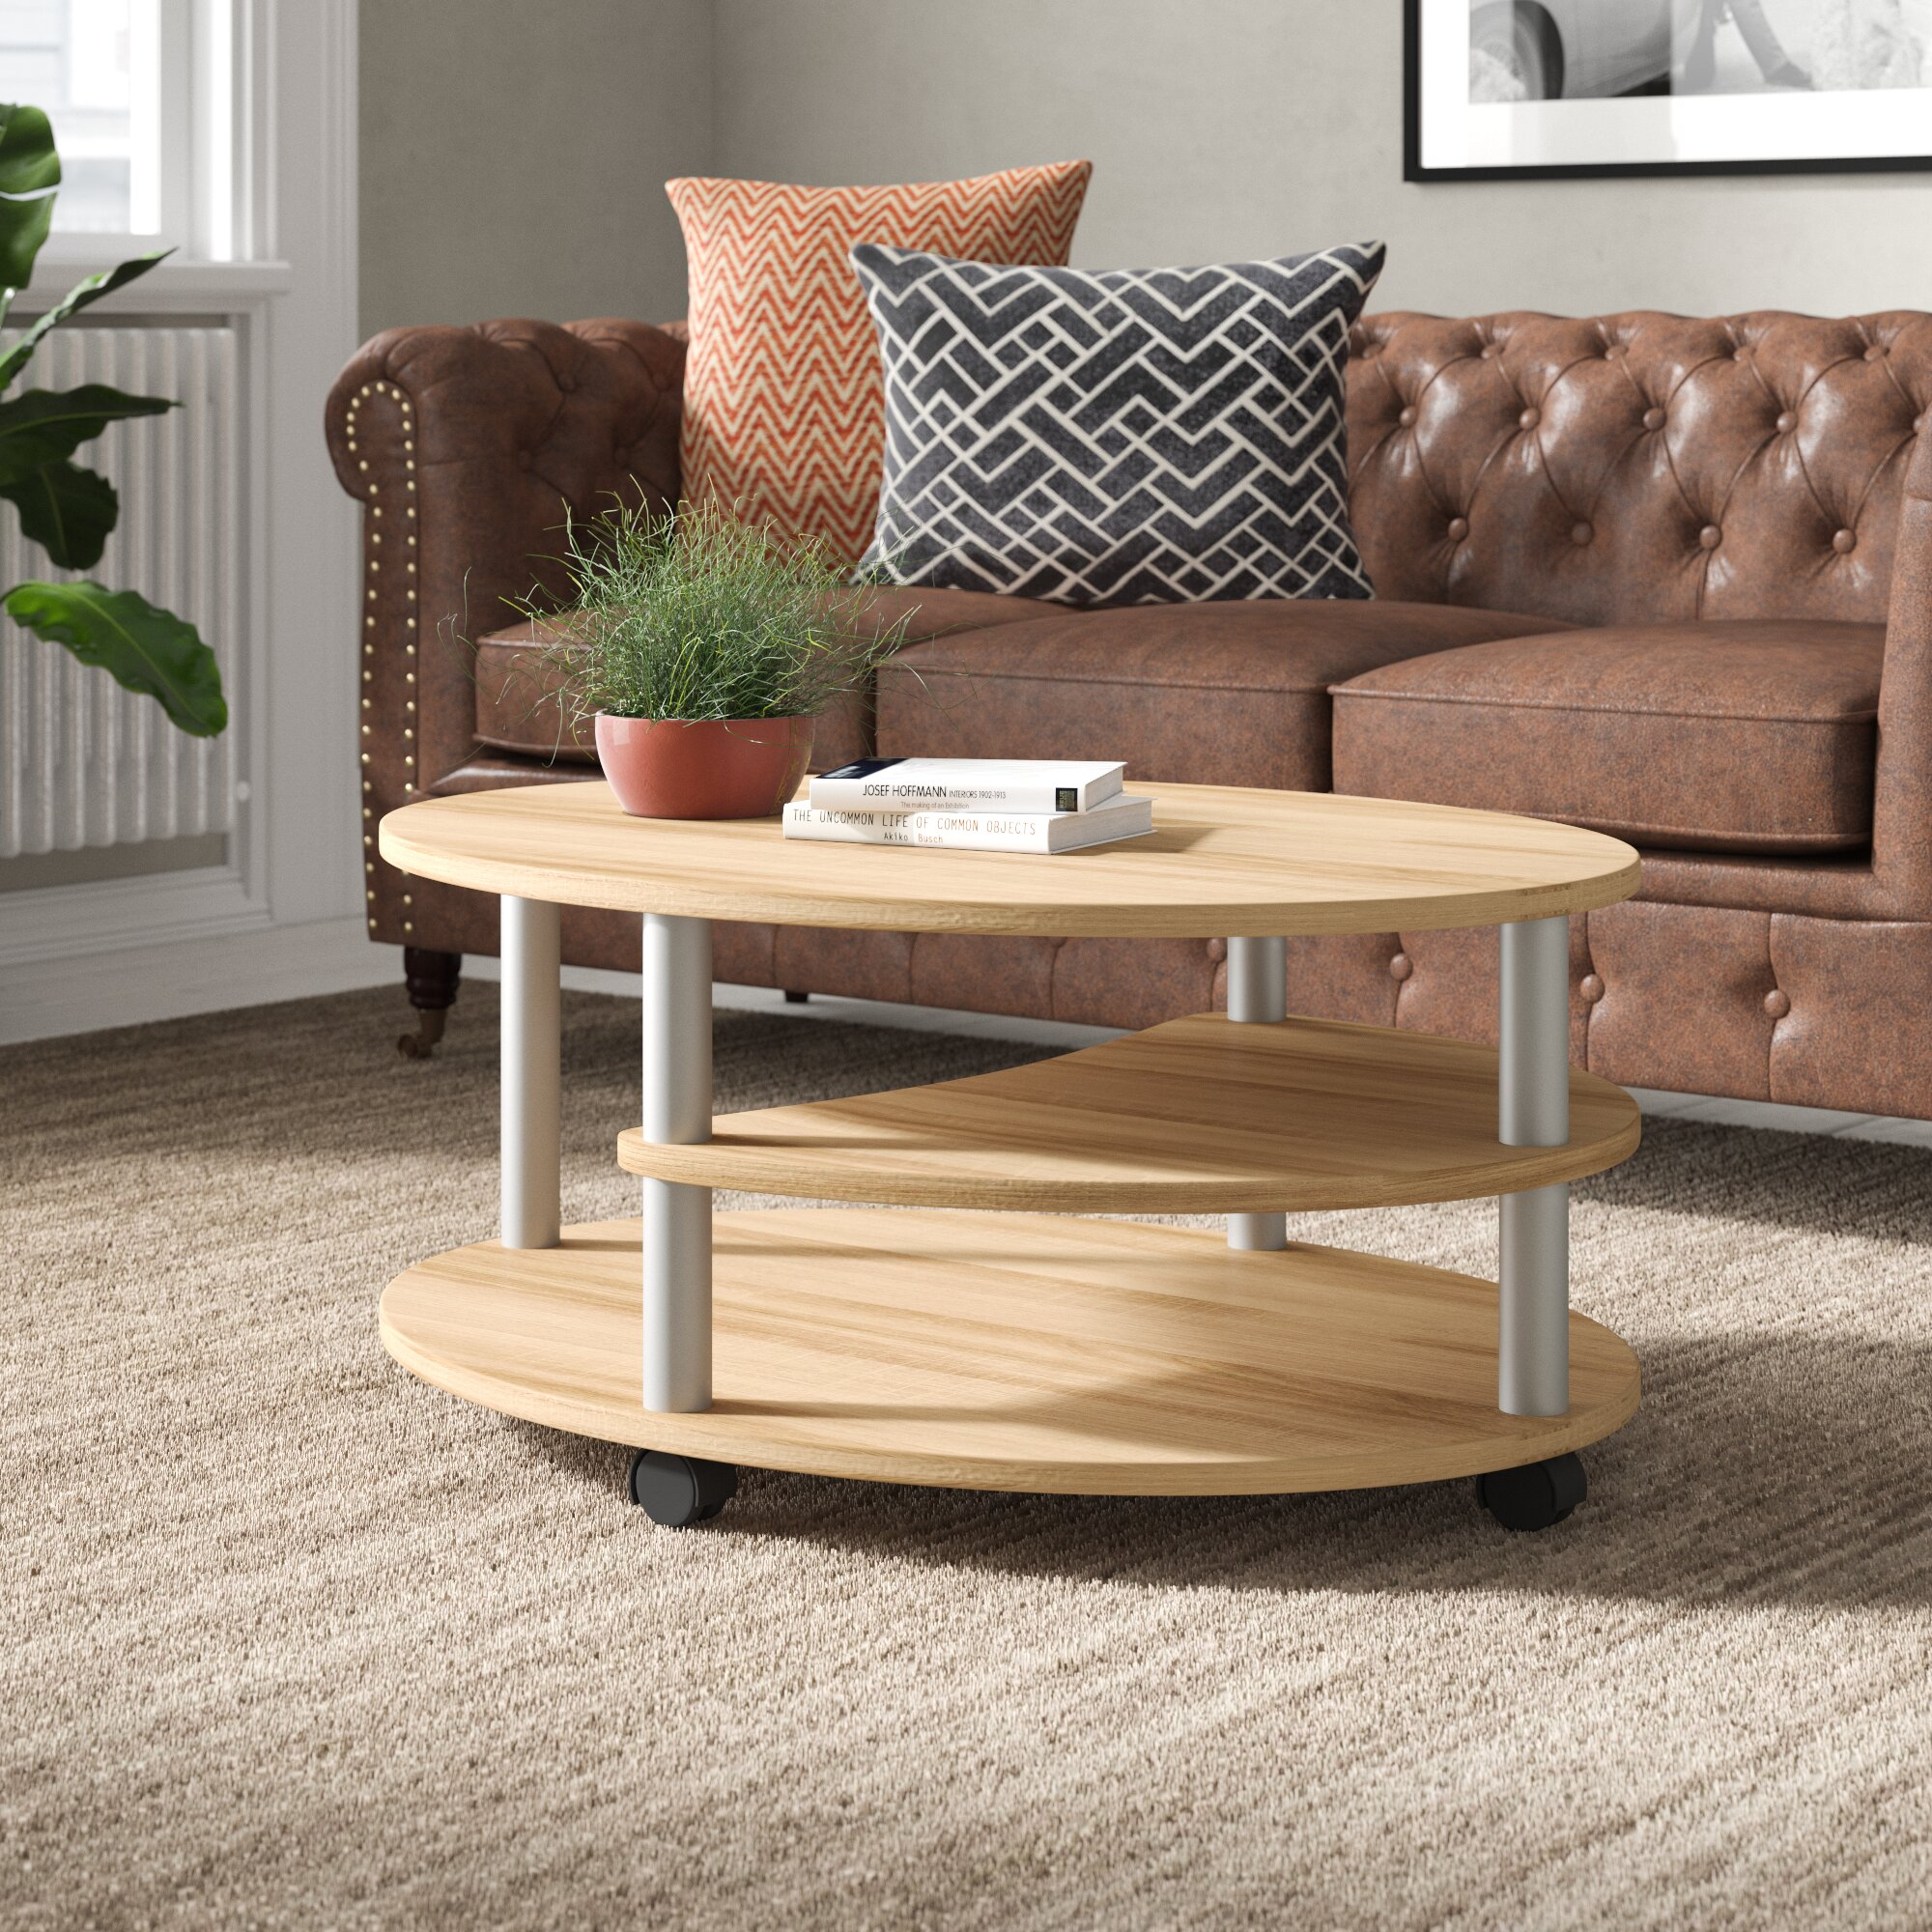 17 Stories Machesney Coffee Table With